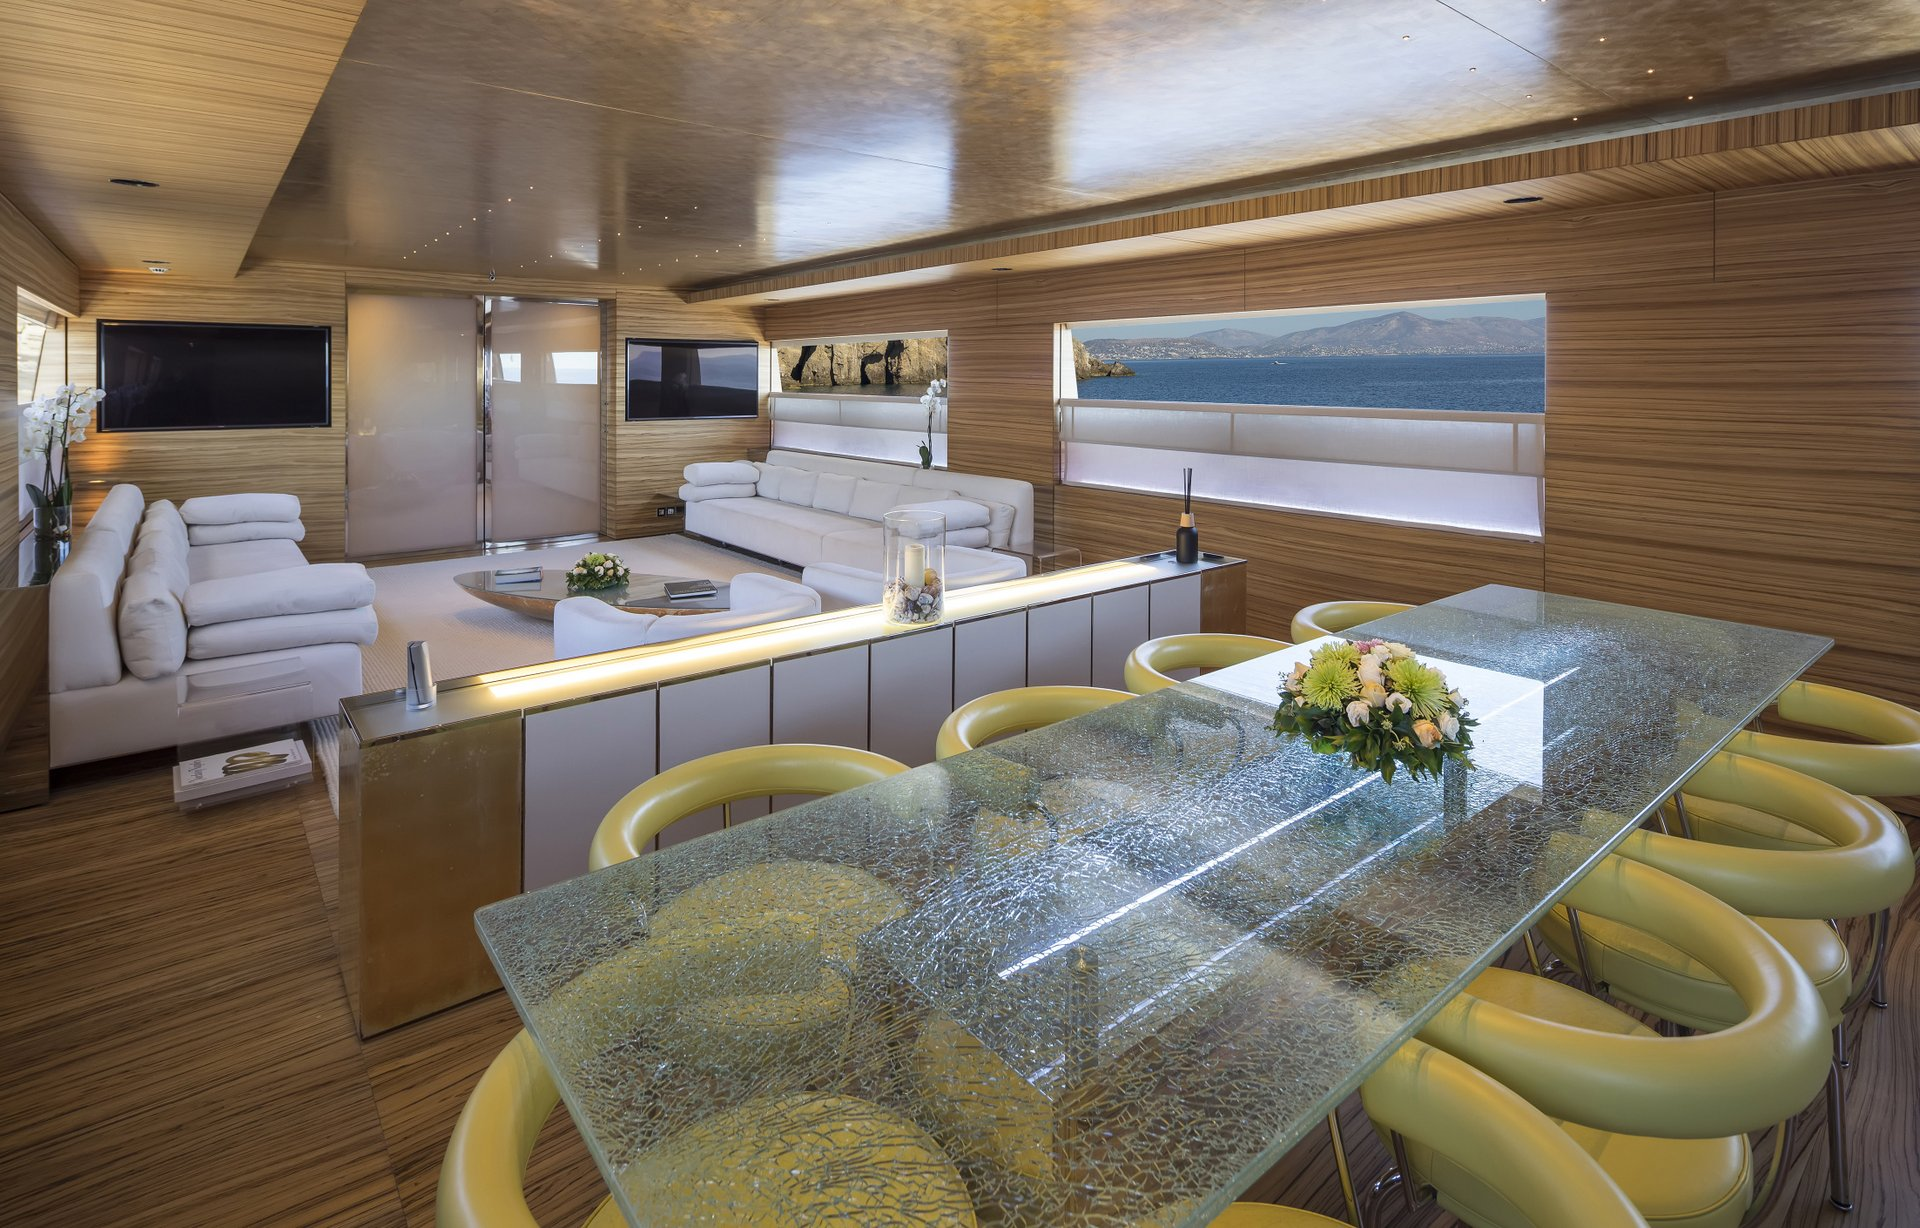 M/Y MABROUK yacht for charter dining table